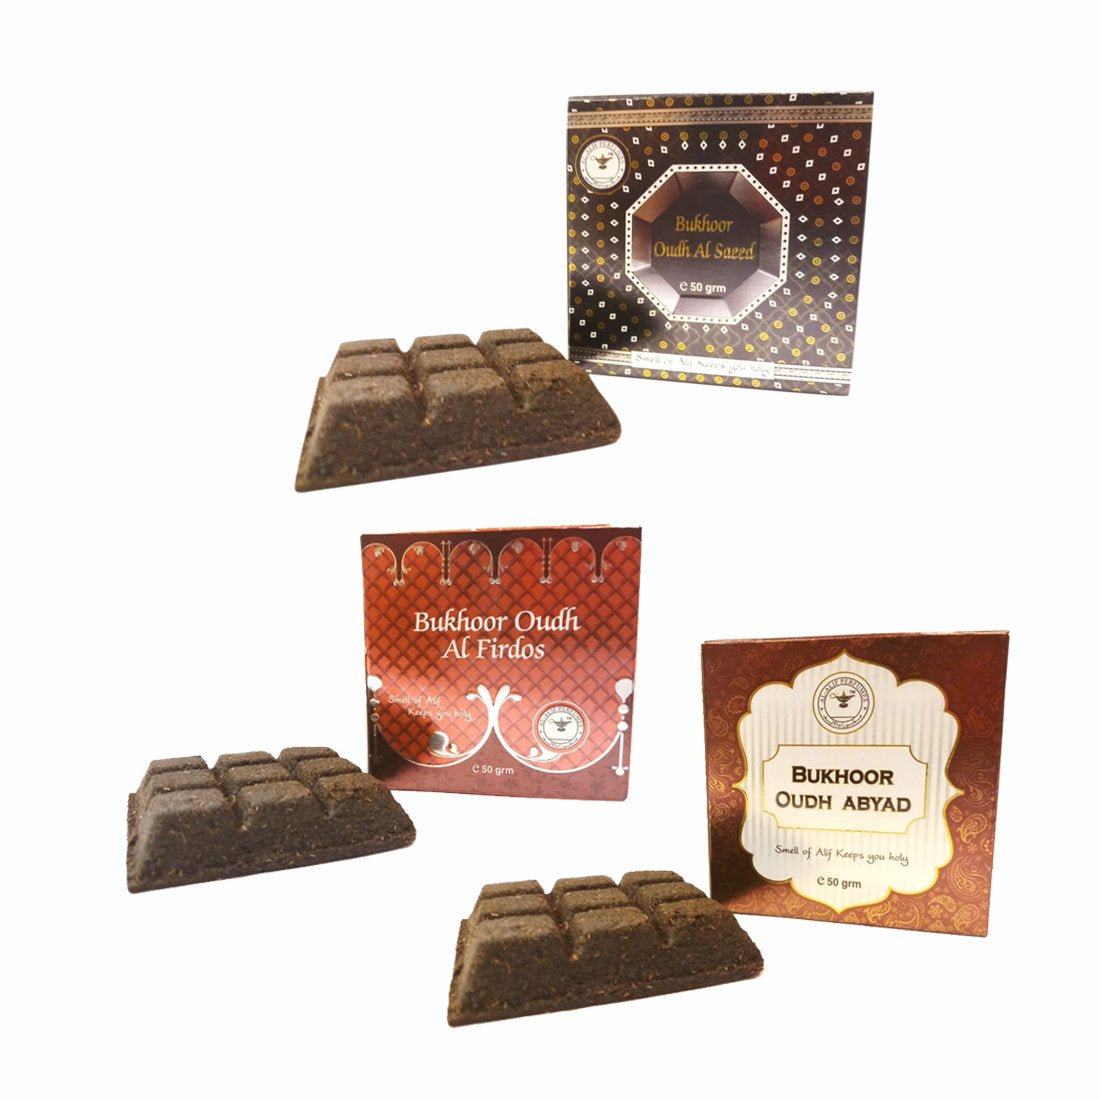 Alif Bukhoor Oudh Abyad, Al Firdous & Al Saeed Incense Home Fragrance Combo Pack Of 3 x 50g